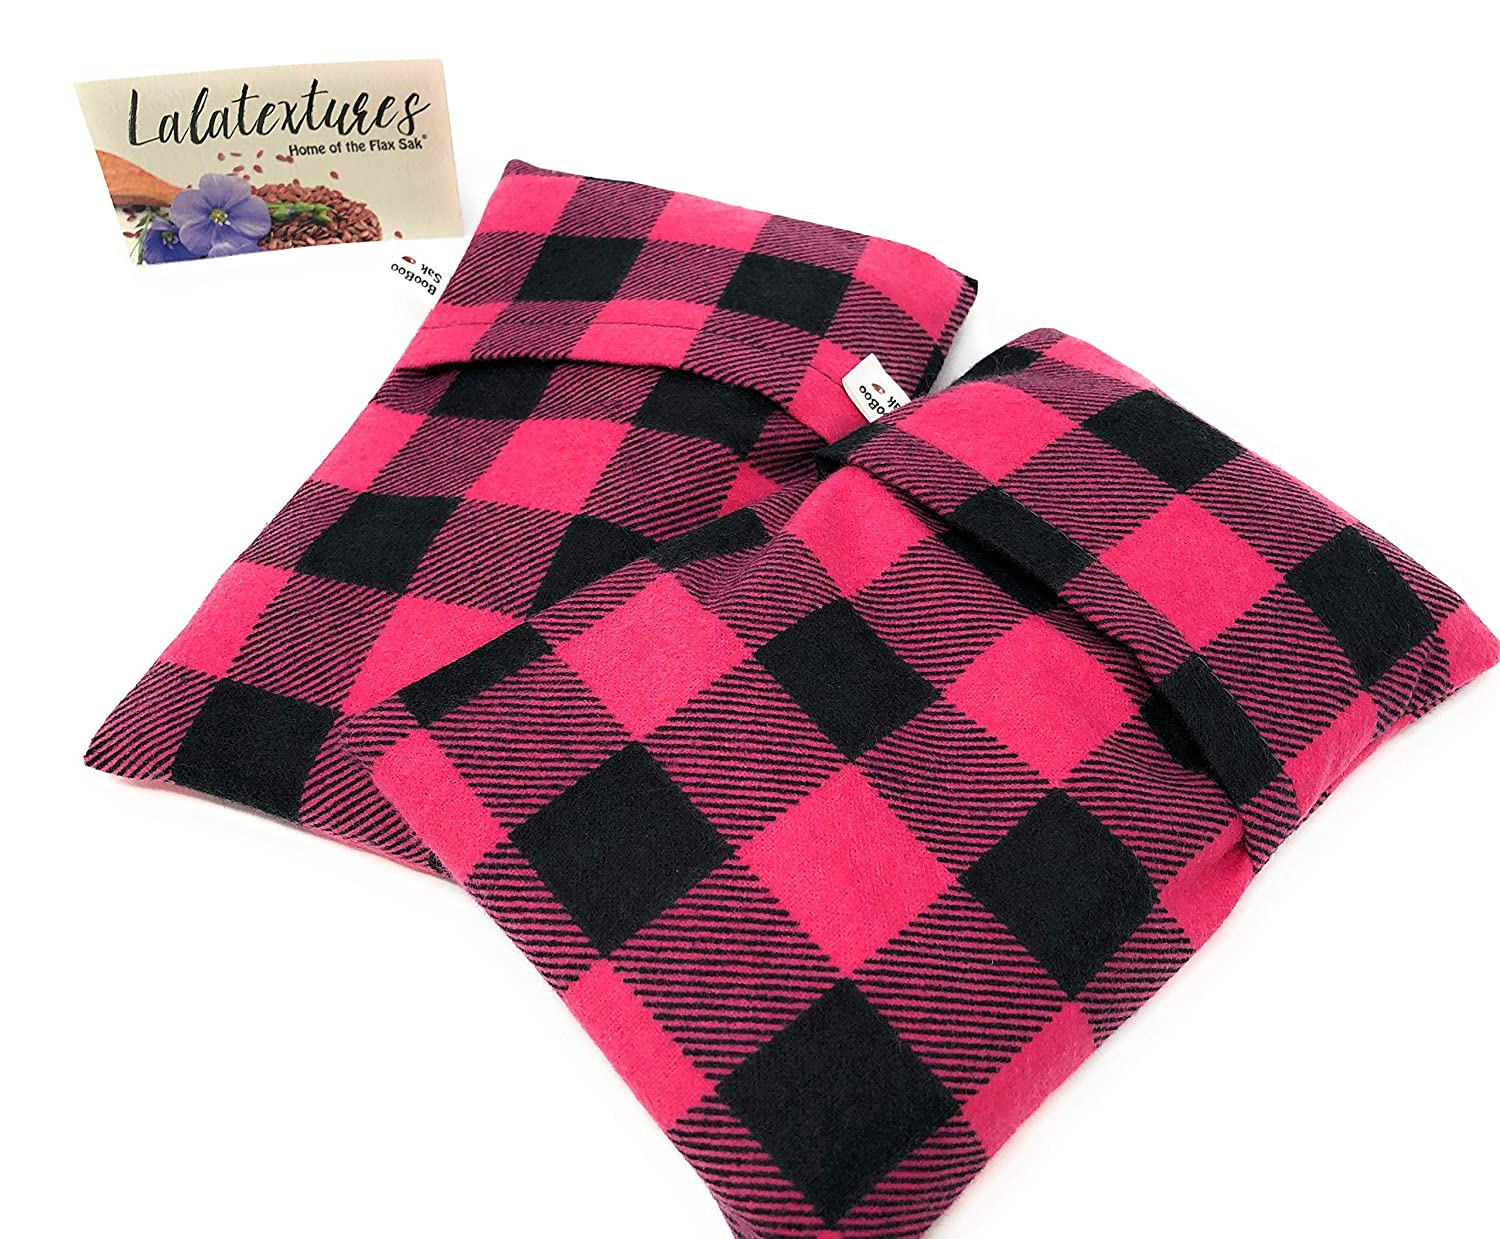 Two Organic Lavender BooBoo Flax Saks, Microwaveable Heating Pads for Children. Keep them in the freezer to soothe their bumps and bruises! Pink Plaid